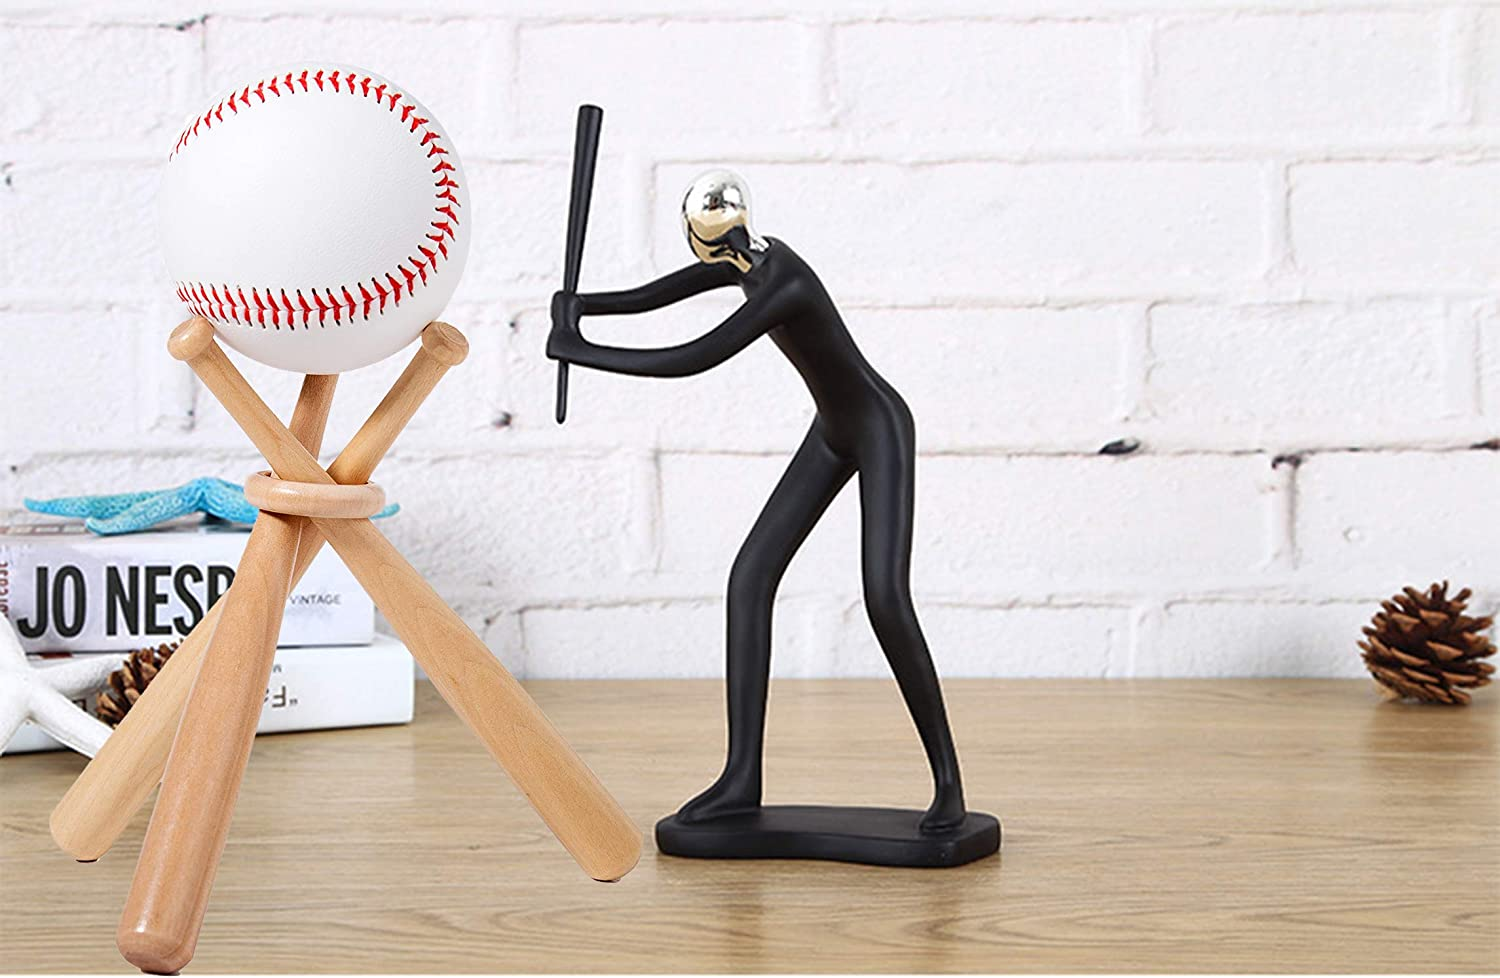 2 Wooden Circles,Baseball Display Stand Holder for Baseball Players Fans,Gift for Man and Women,Kids Buterify jewelry Wooden Baseball Stand Display Holder Set of 2 Pack,Includes 6 Mini Baseball Bats